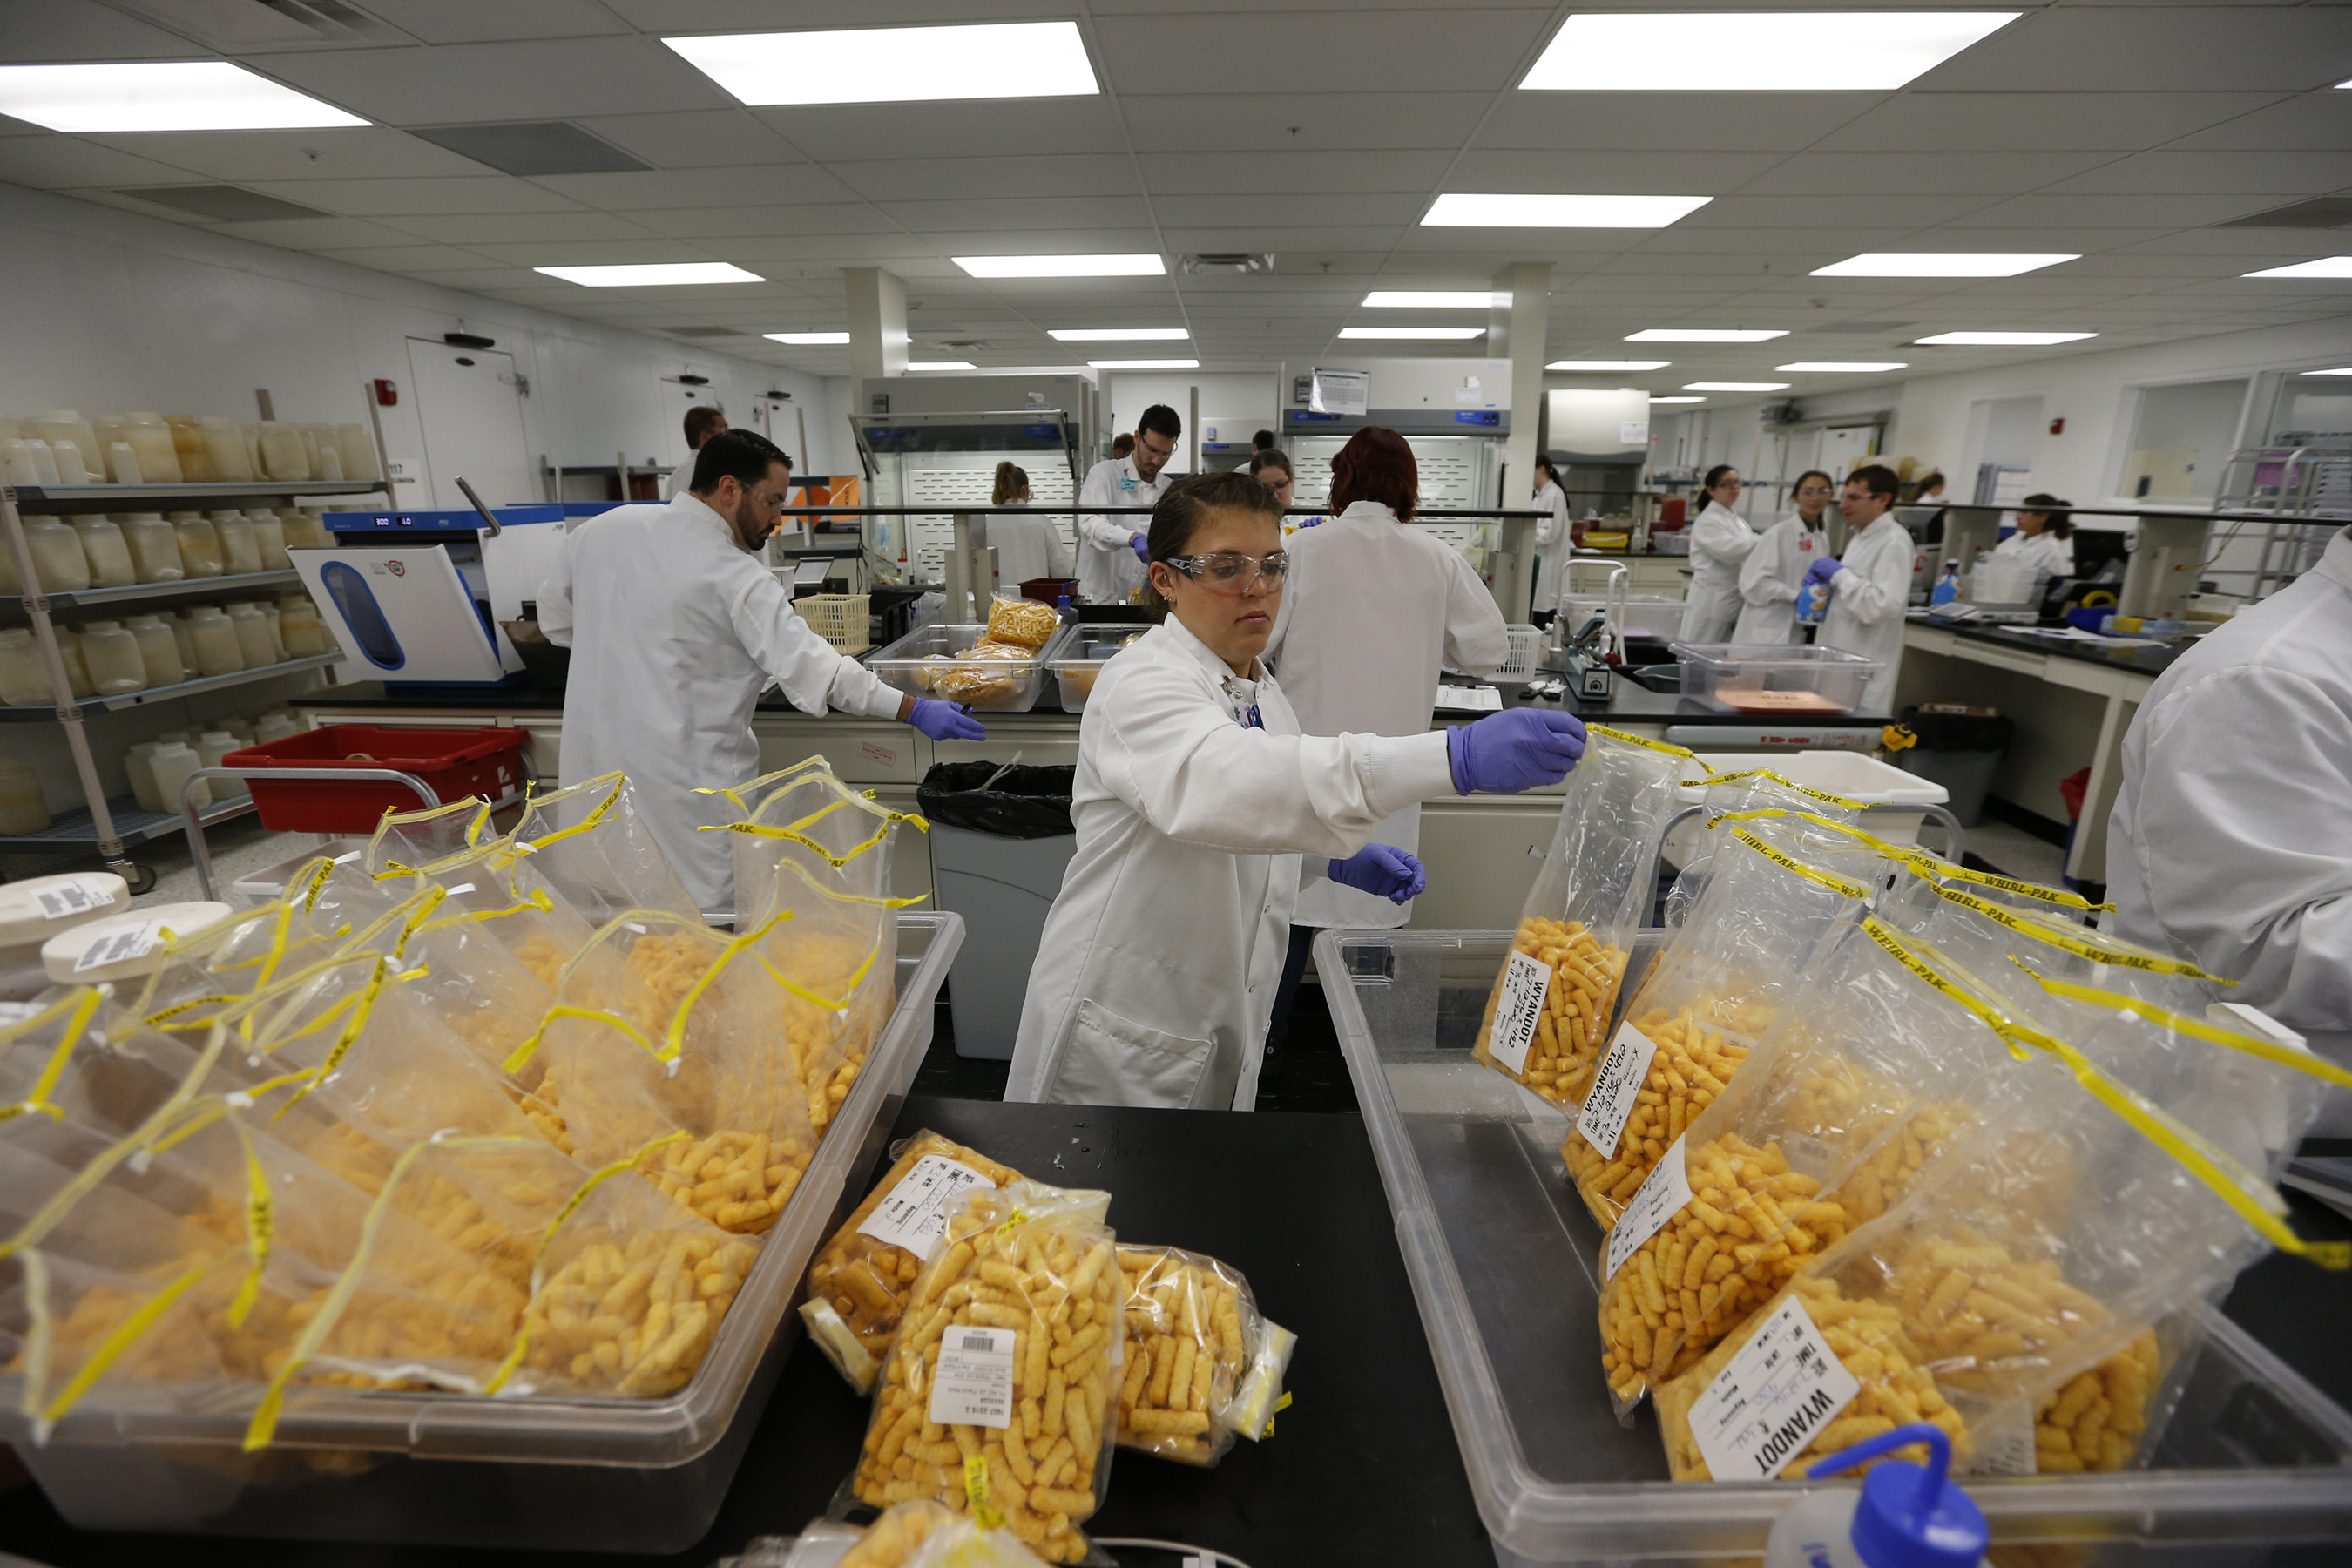 Nestlé Makes Strides On Global Quality Roadmap With State-of-the-Art Expansion At The Nestlé Quality Assurance Center In Dublin, Ohio